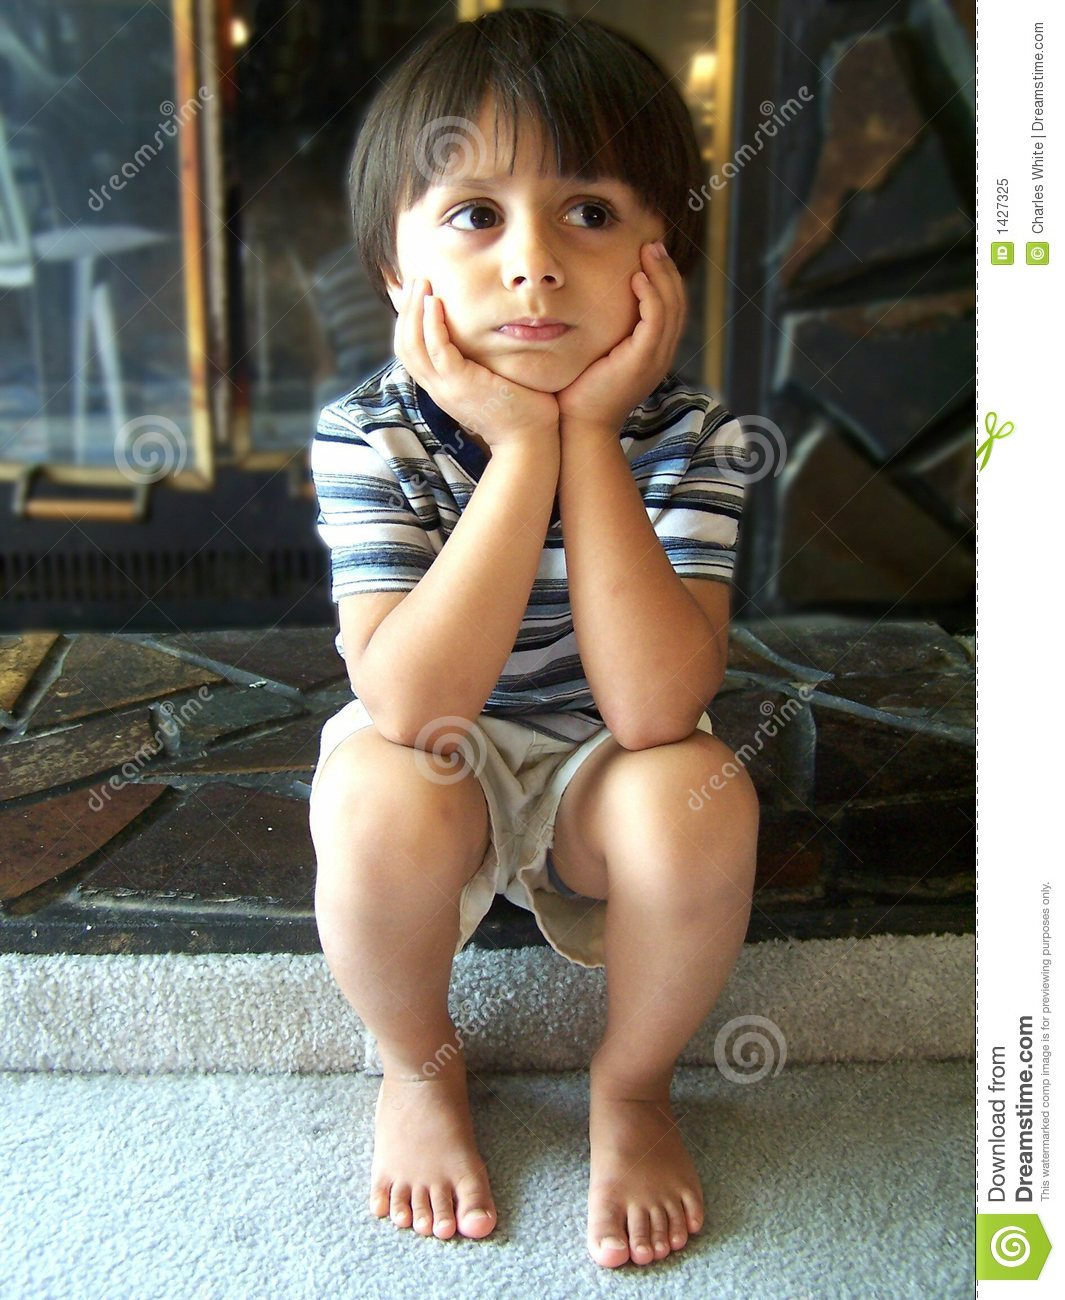 Cute Little Boy Thinking Royalty Free Stock Photo